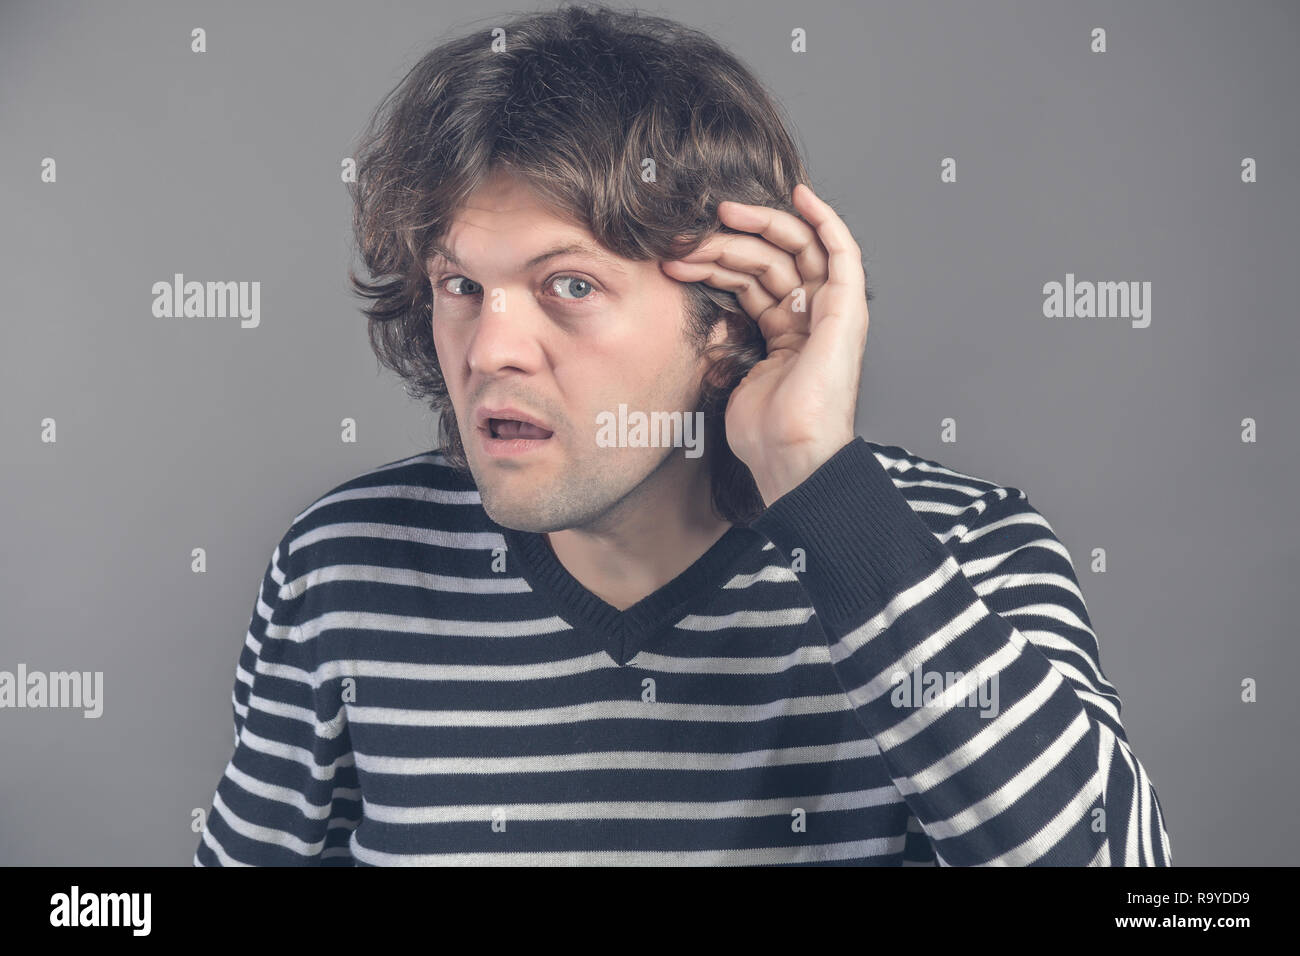 Closeup of curious or deaf man placing hand on ear asking someone to speak up or listening to bad news, isolated on grey background. Negative emotion  - Stock Image